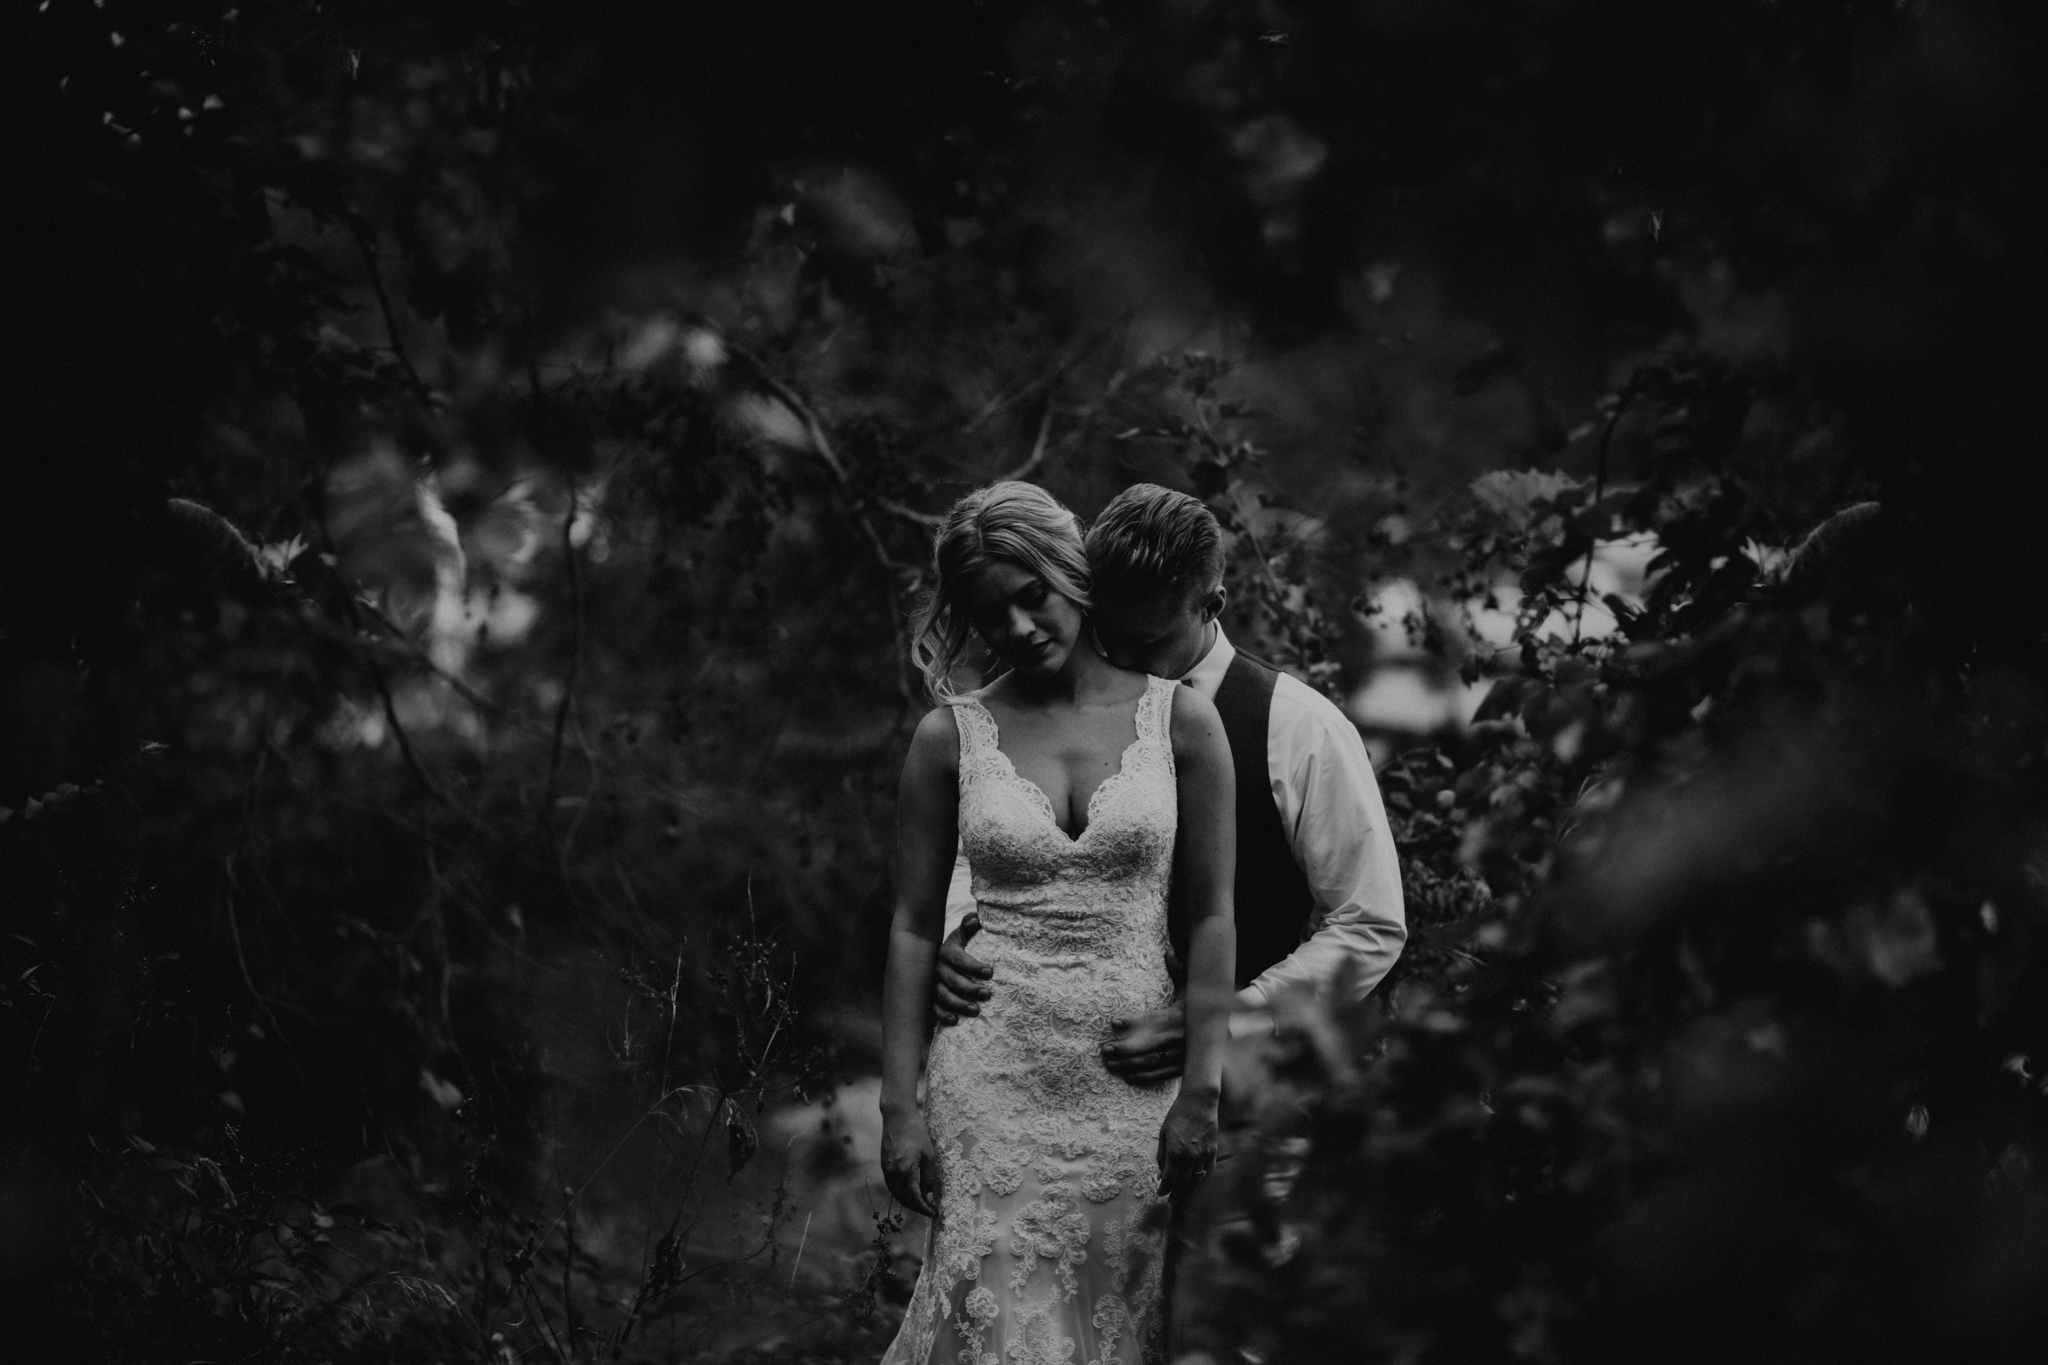 Bride and groom black and white in the woods - dark and moody creative wedding photography